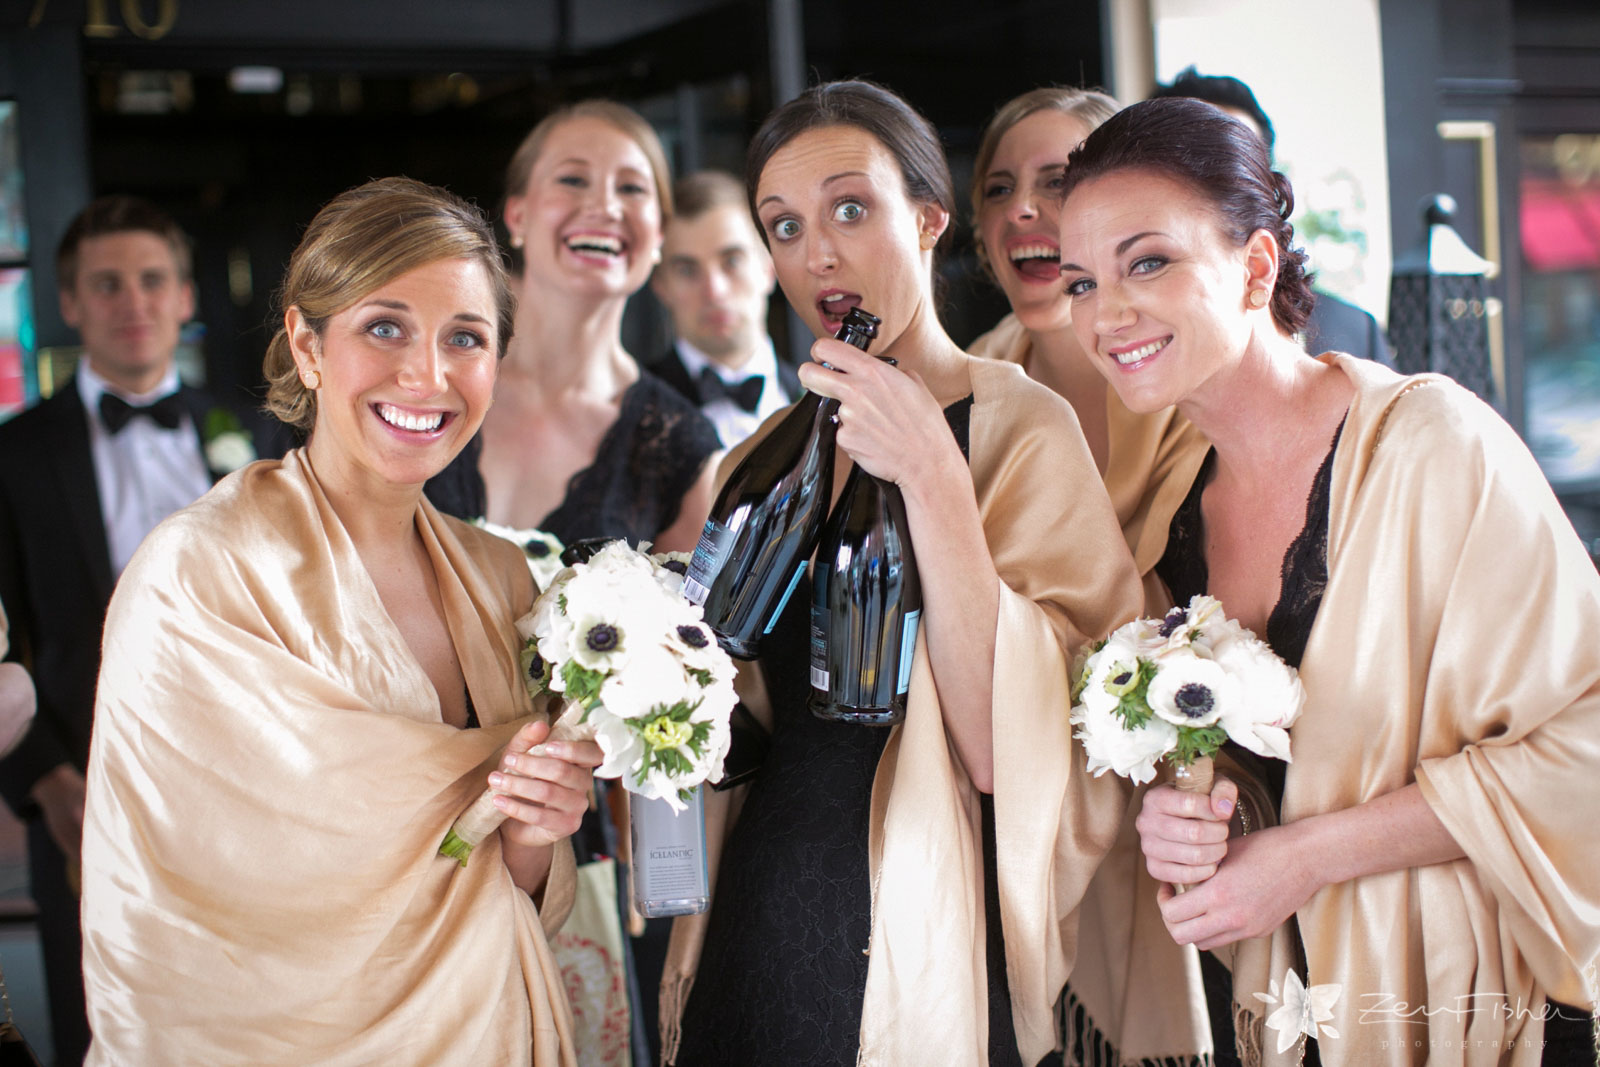 Bridesmaids being silly, making funny faces and holding champagne bottles.